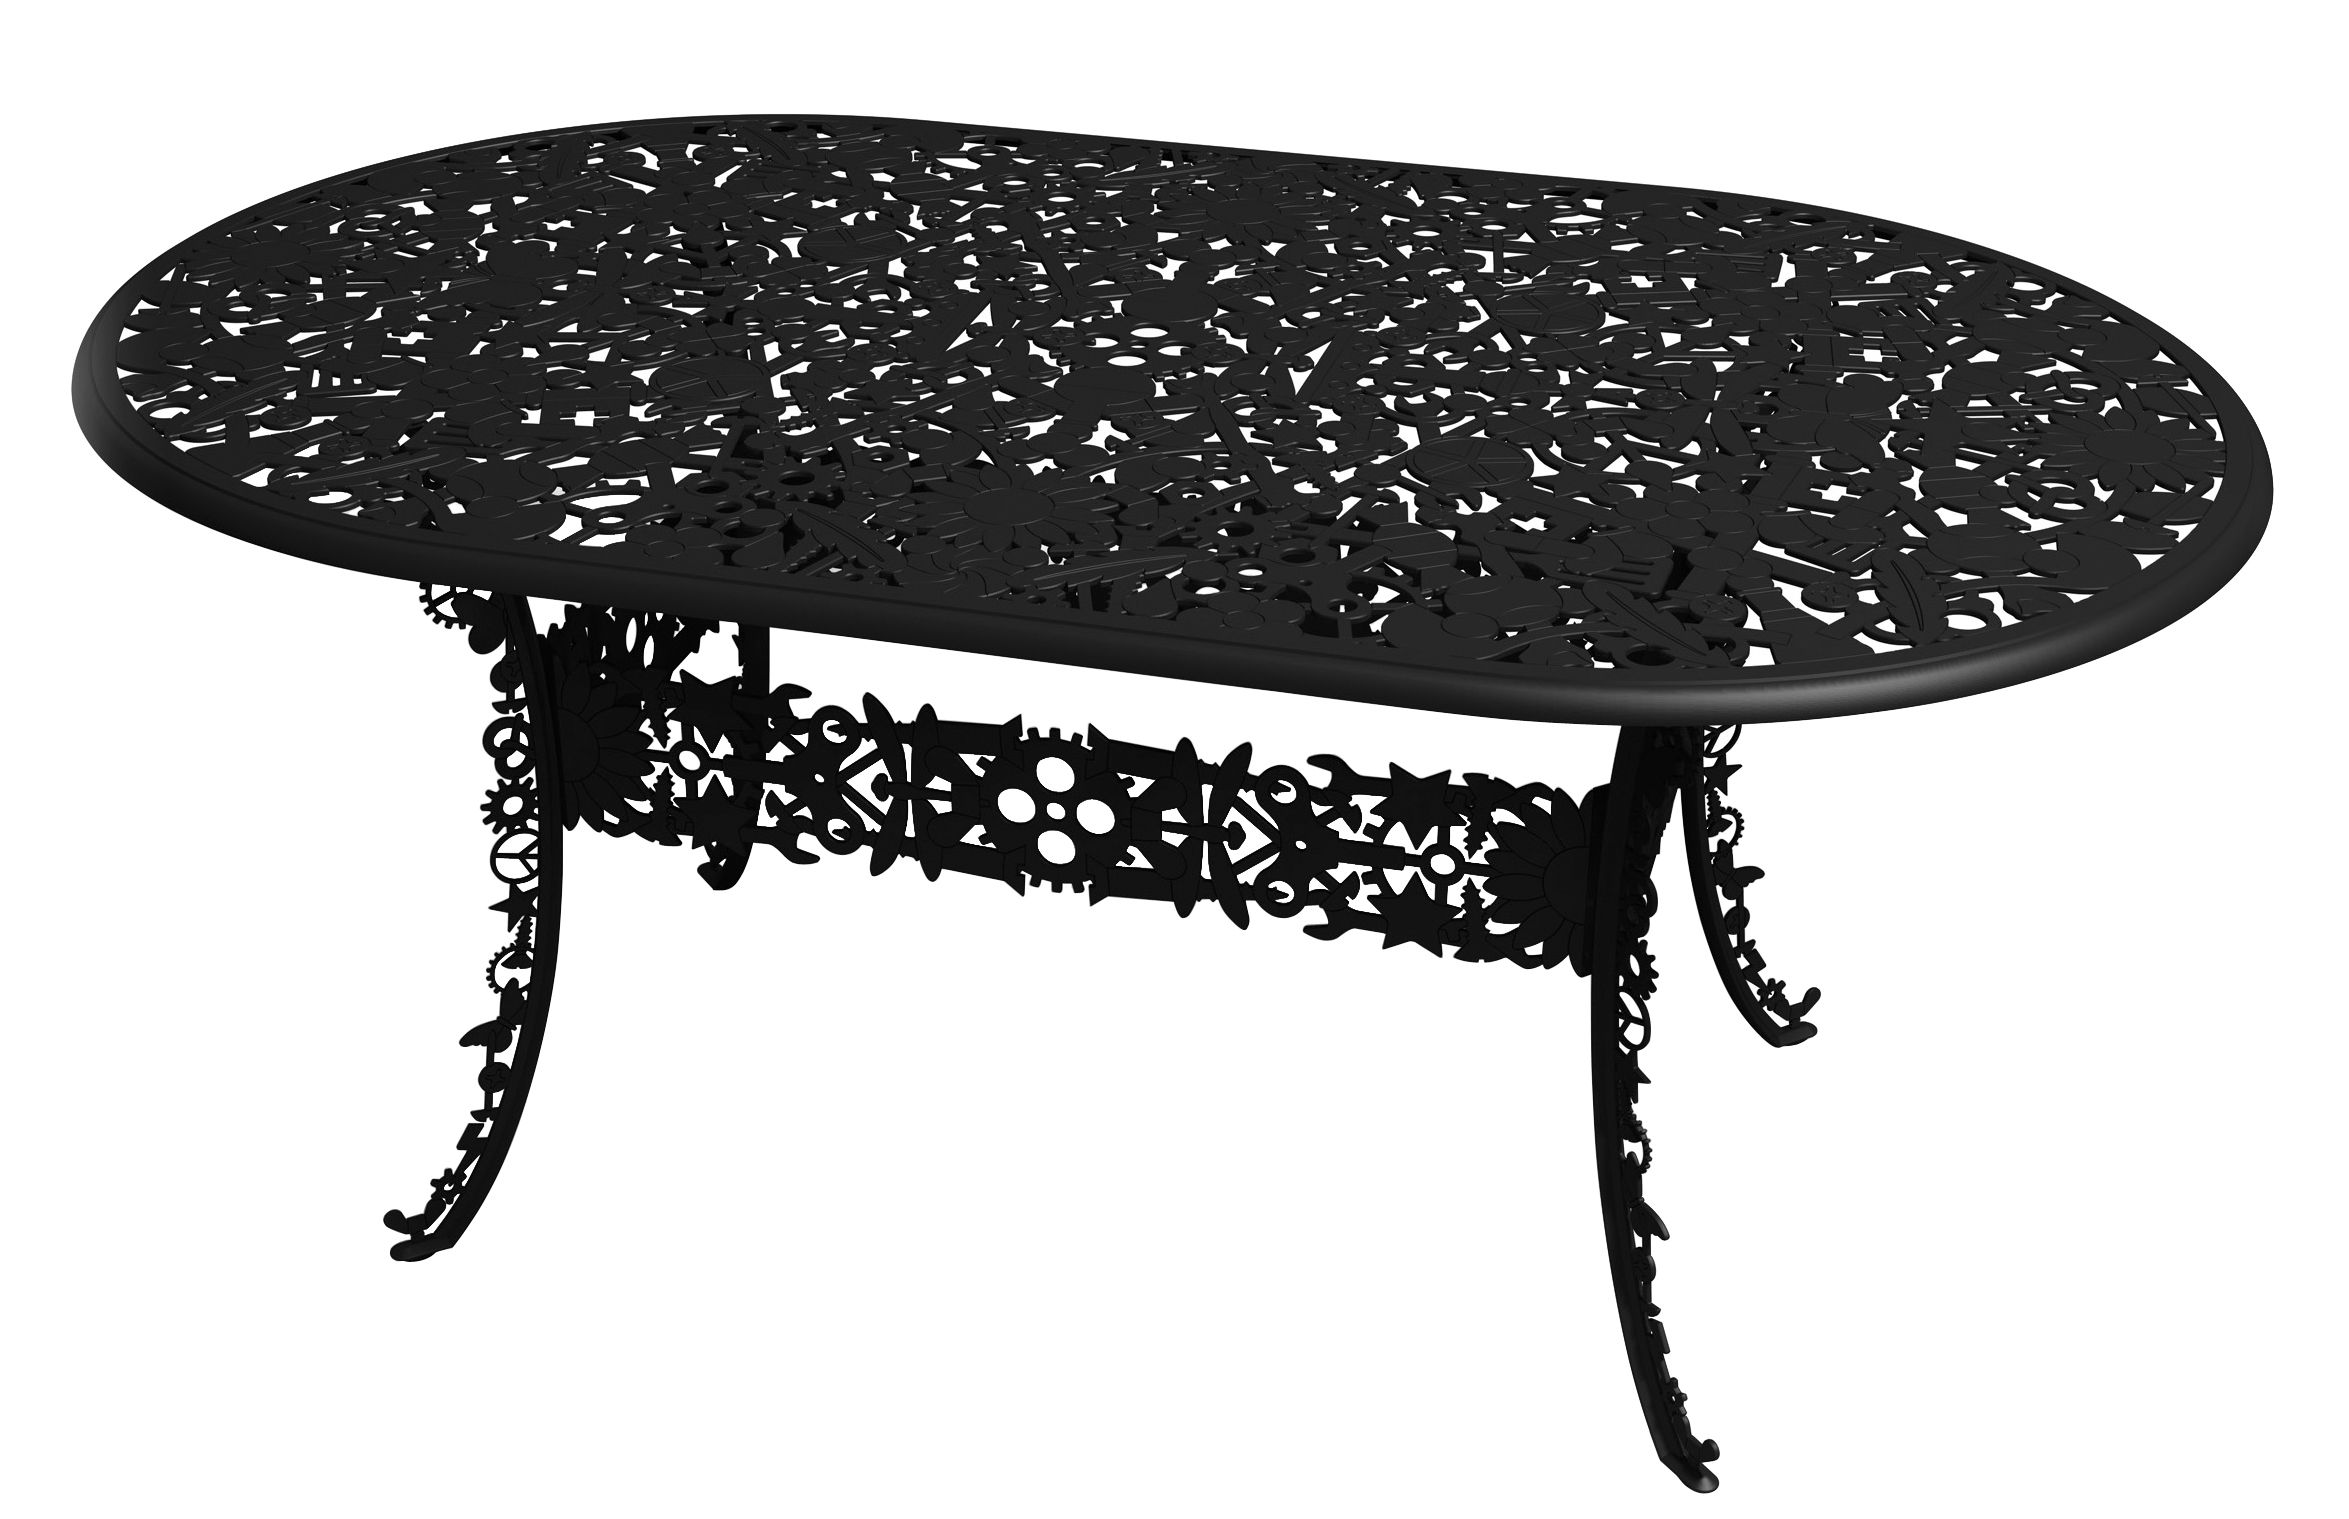 313a7d9b5a30 Table ovale Industry Garden by Seletti - Black | Made In Design UK